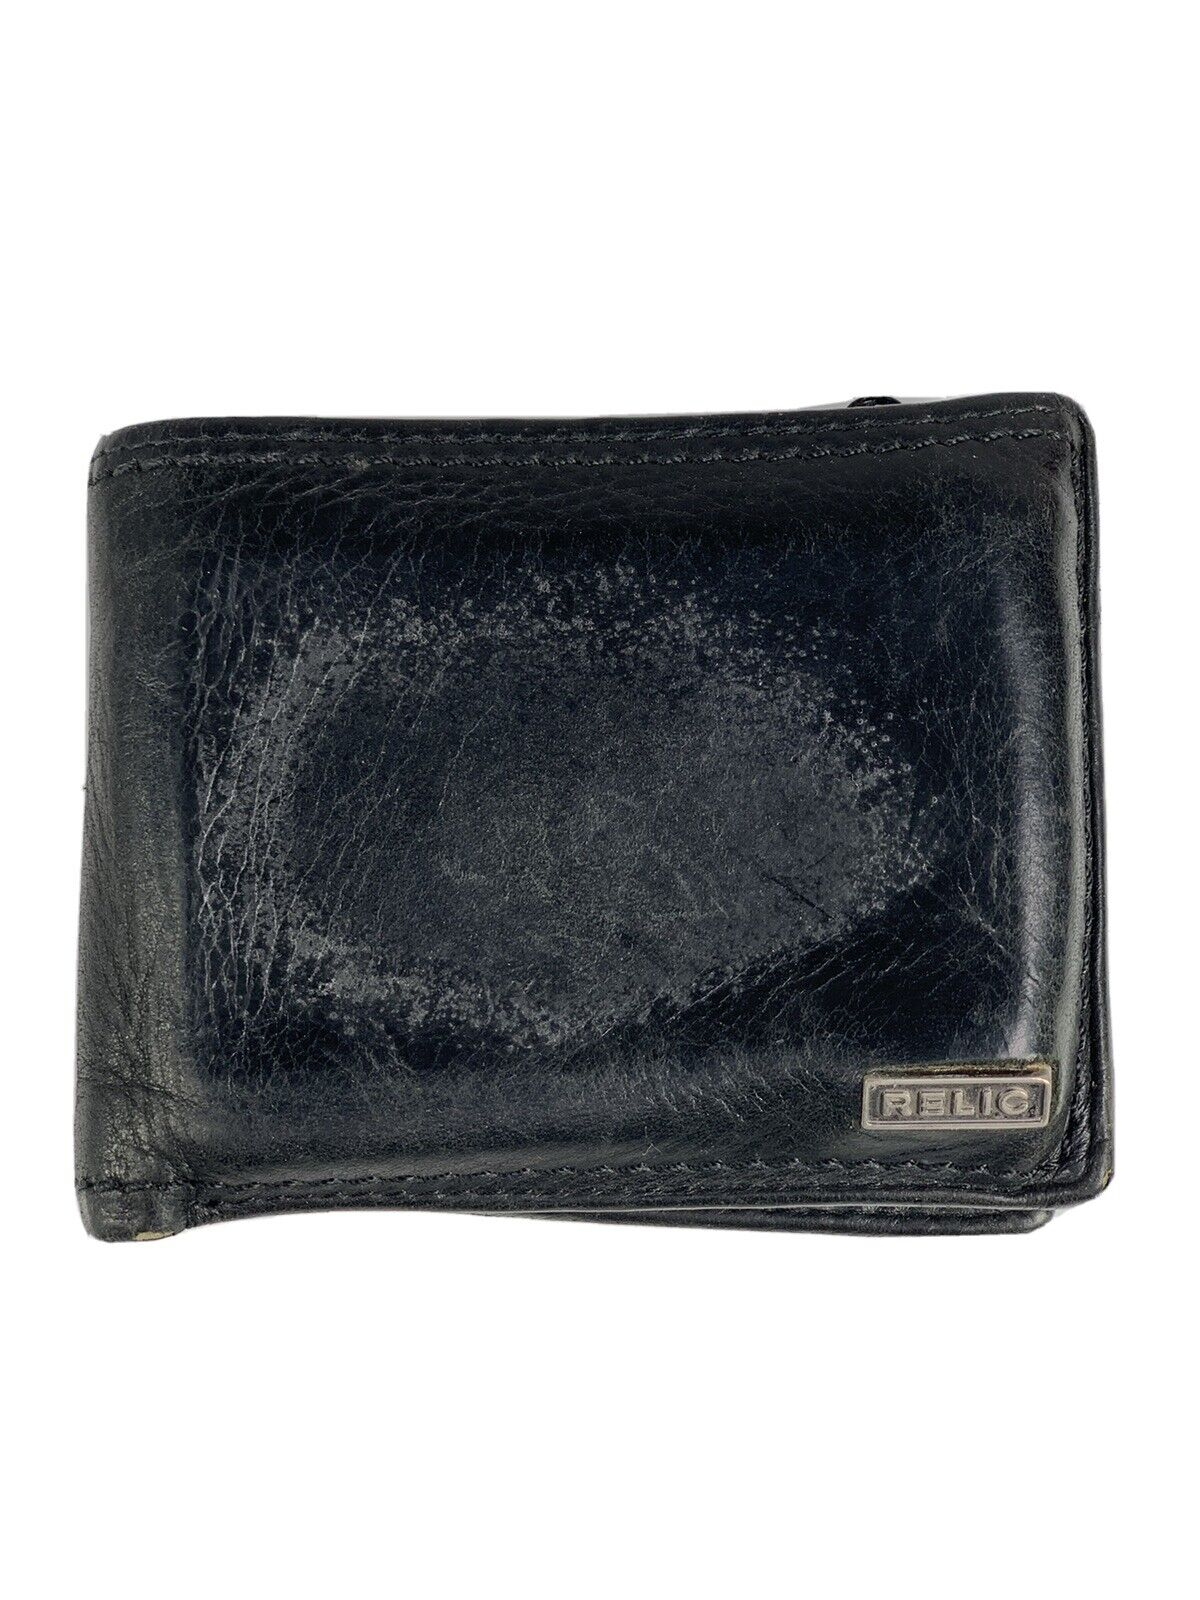 Mens Tri-Fold USED and WELL WORN in Wallet RELIC branding